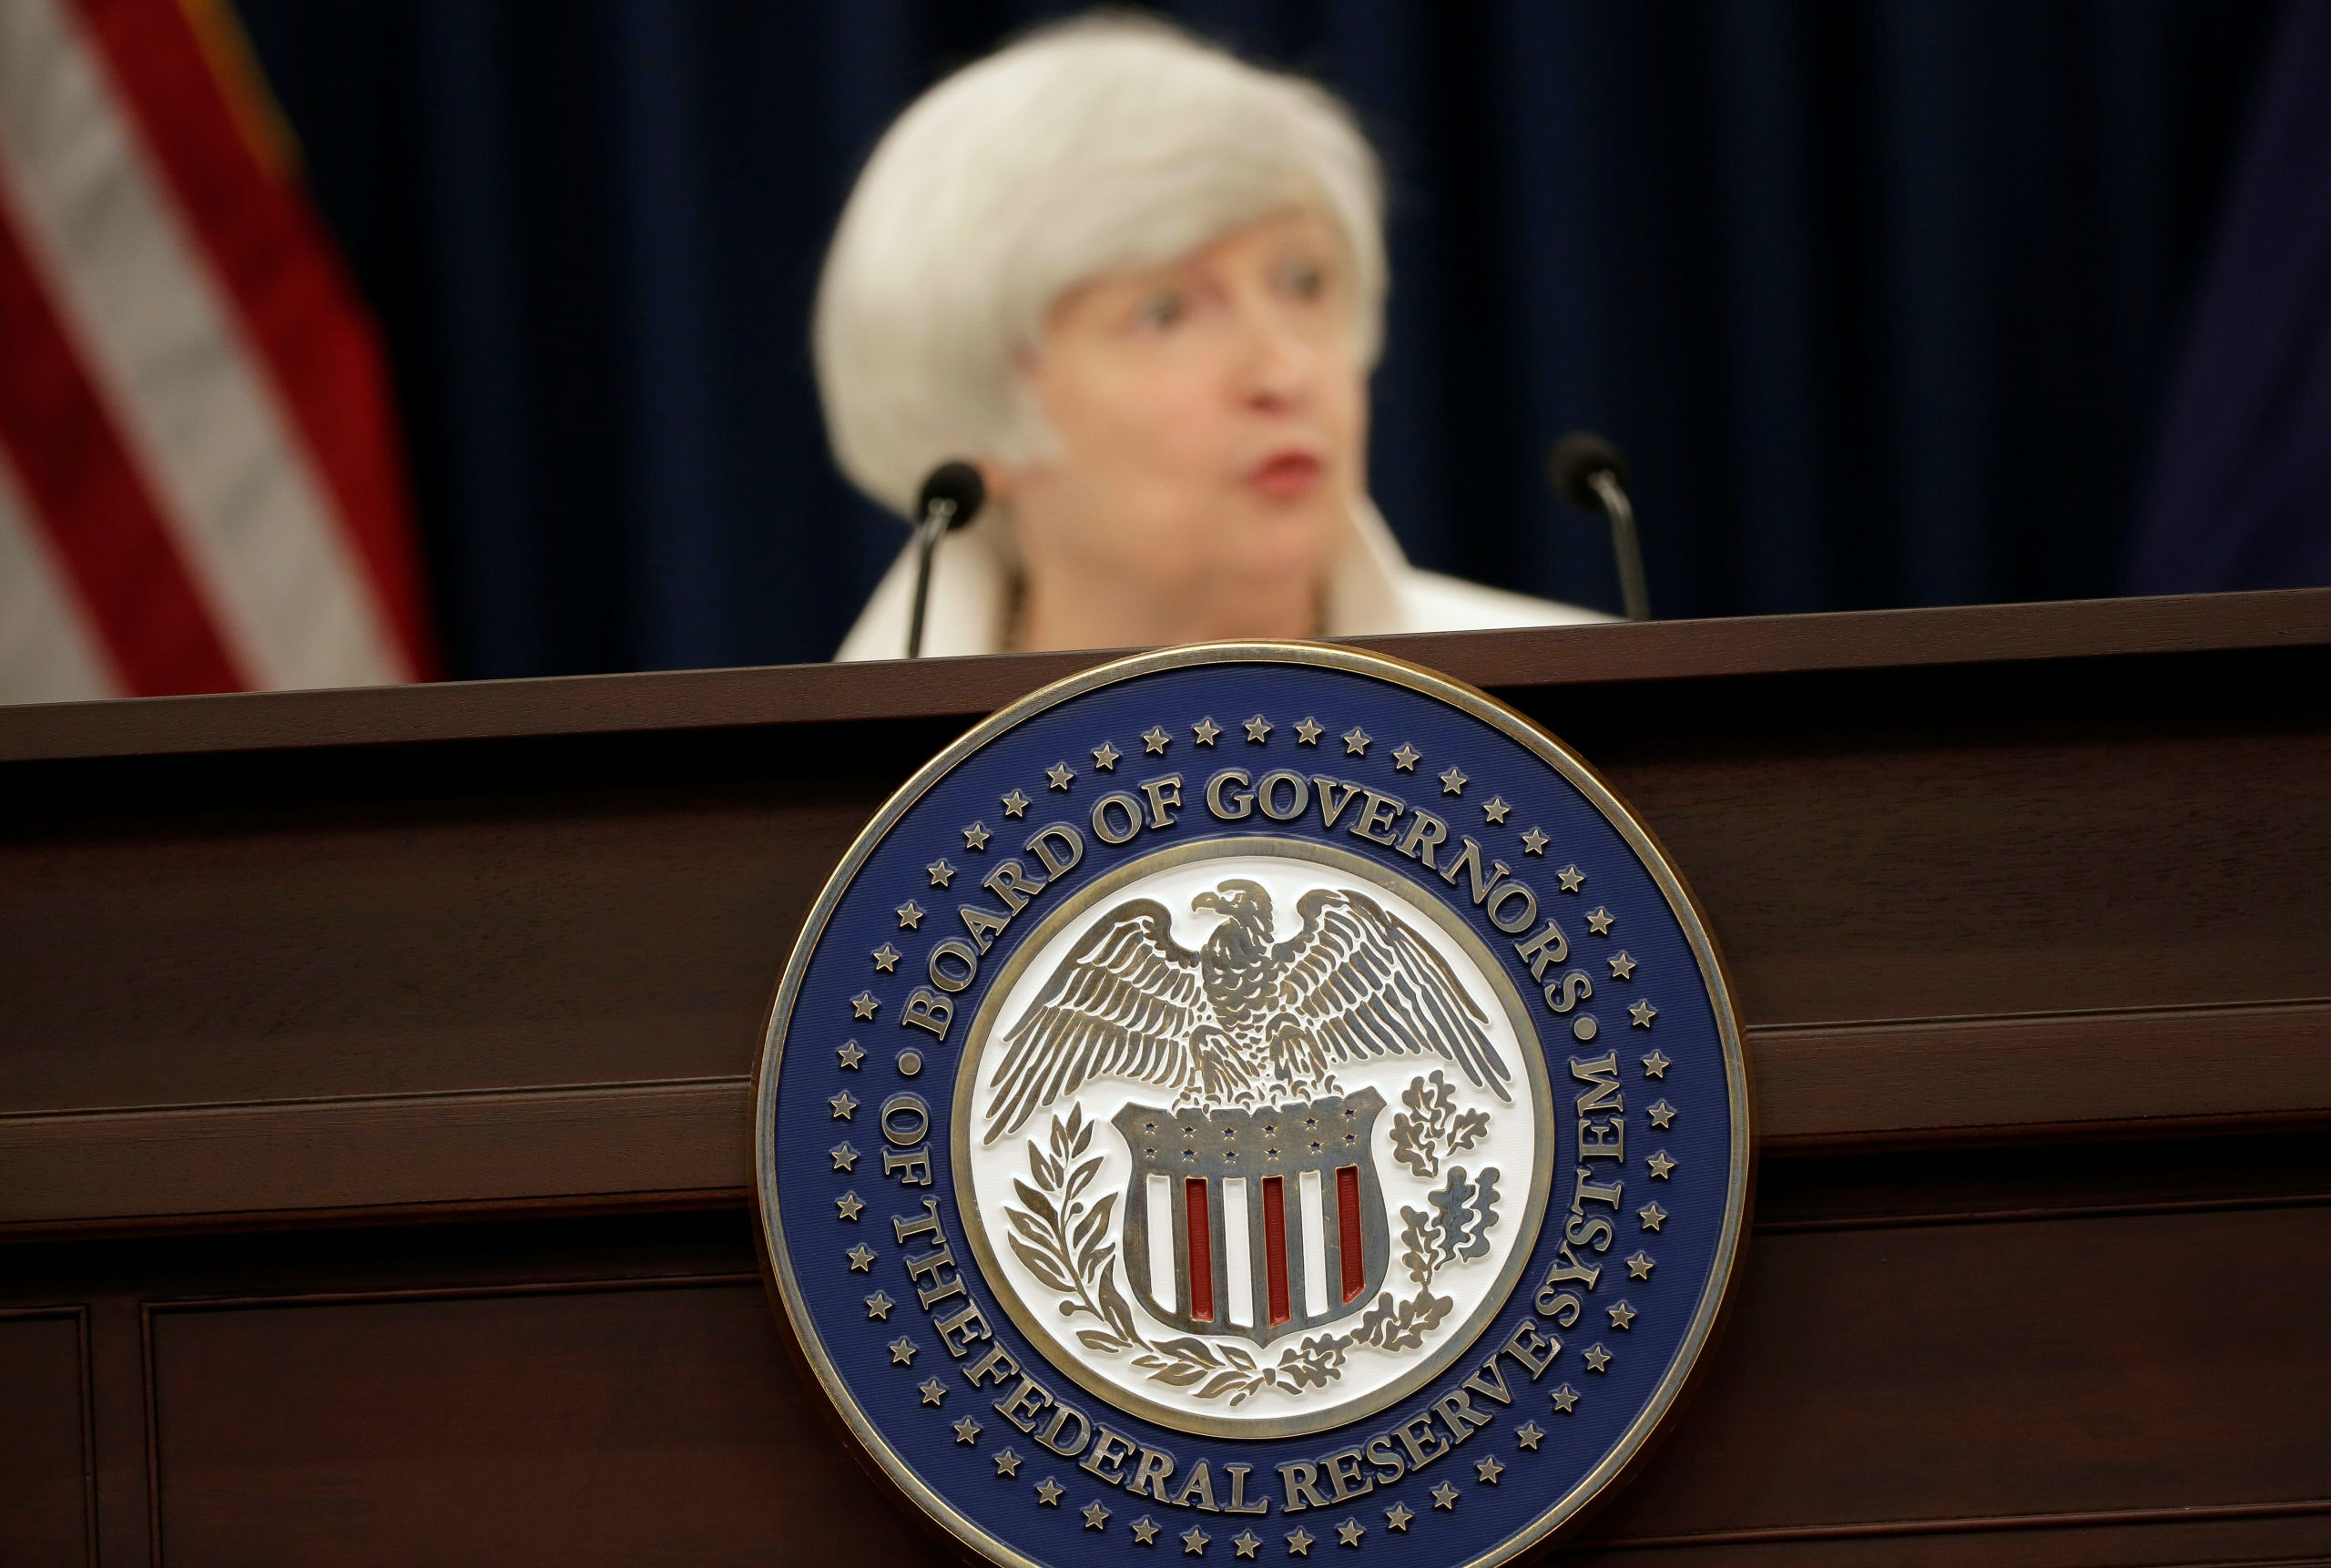 Federal Reserve Chairman Janet Yellen speaks during a news conference after a two-day Federal Open Markets Committee (FOMC) policy meeting, in Washington, U.S., September 20, 2017. REUTERS/Joshua Roberts - RC17B6785EE0